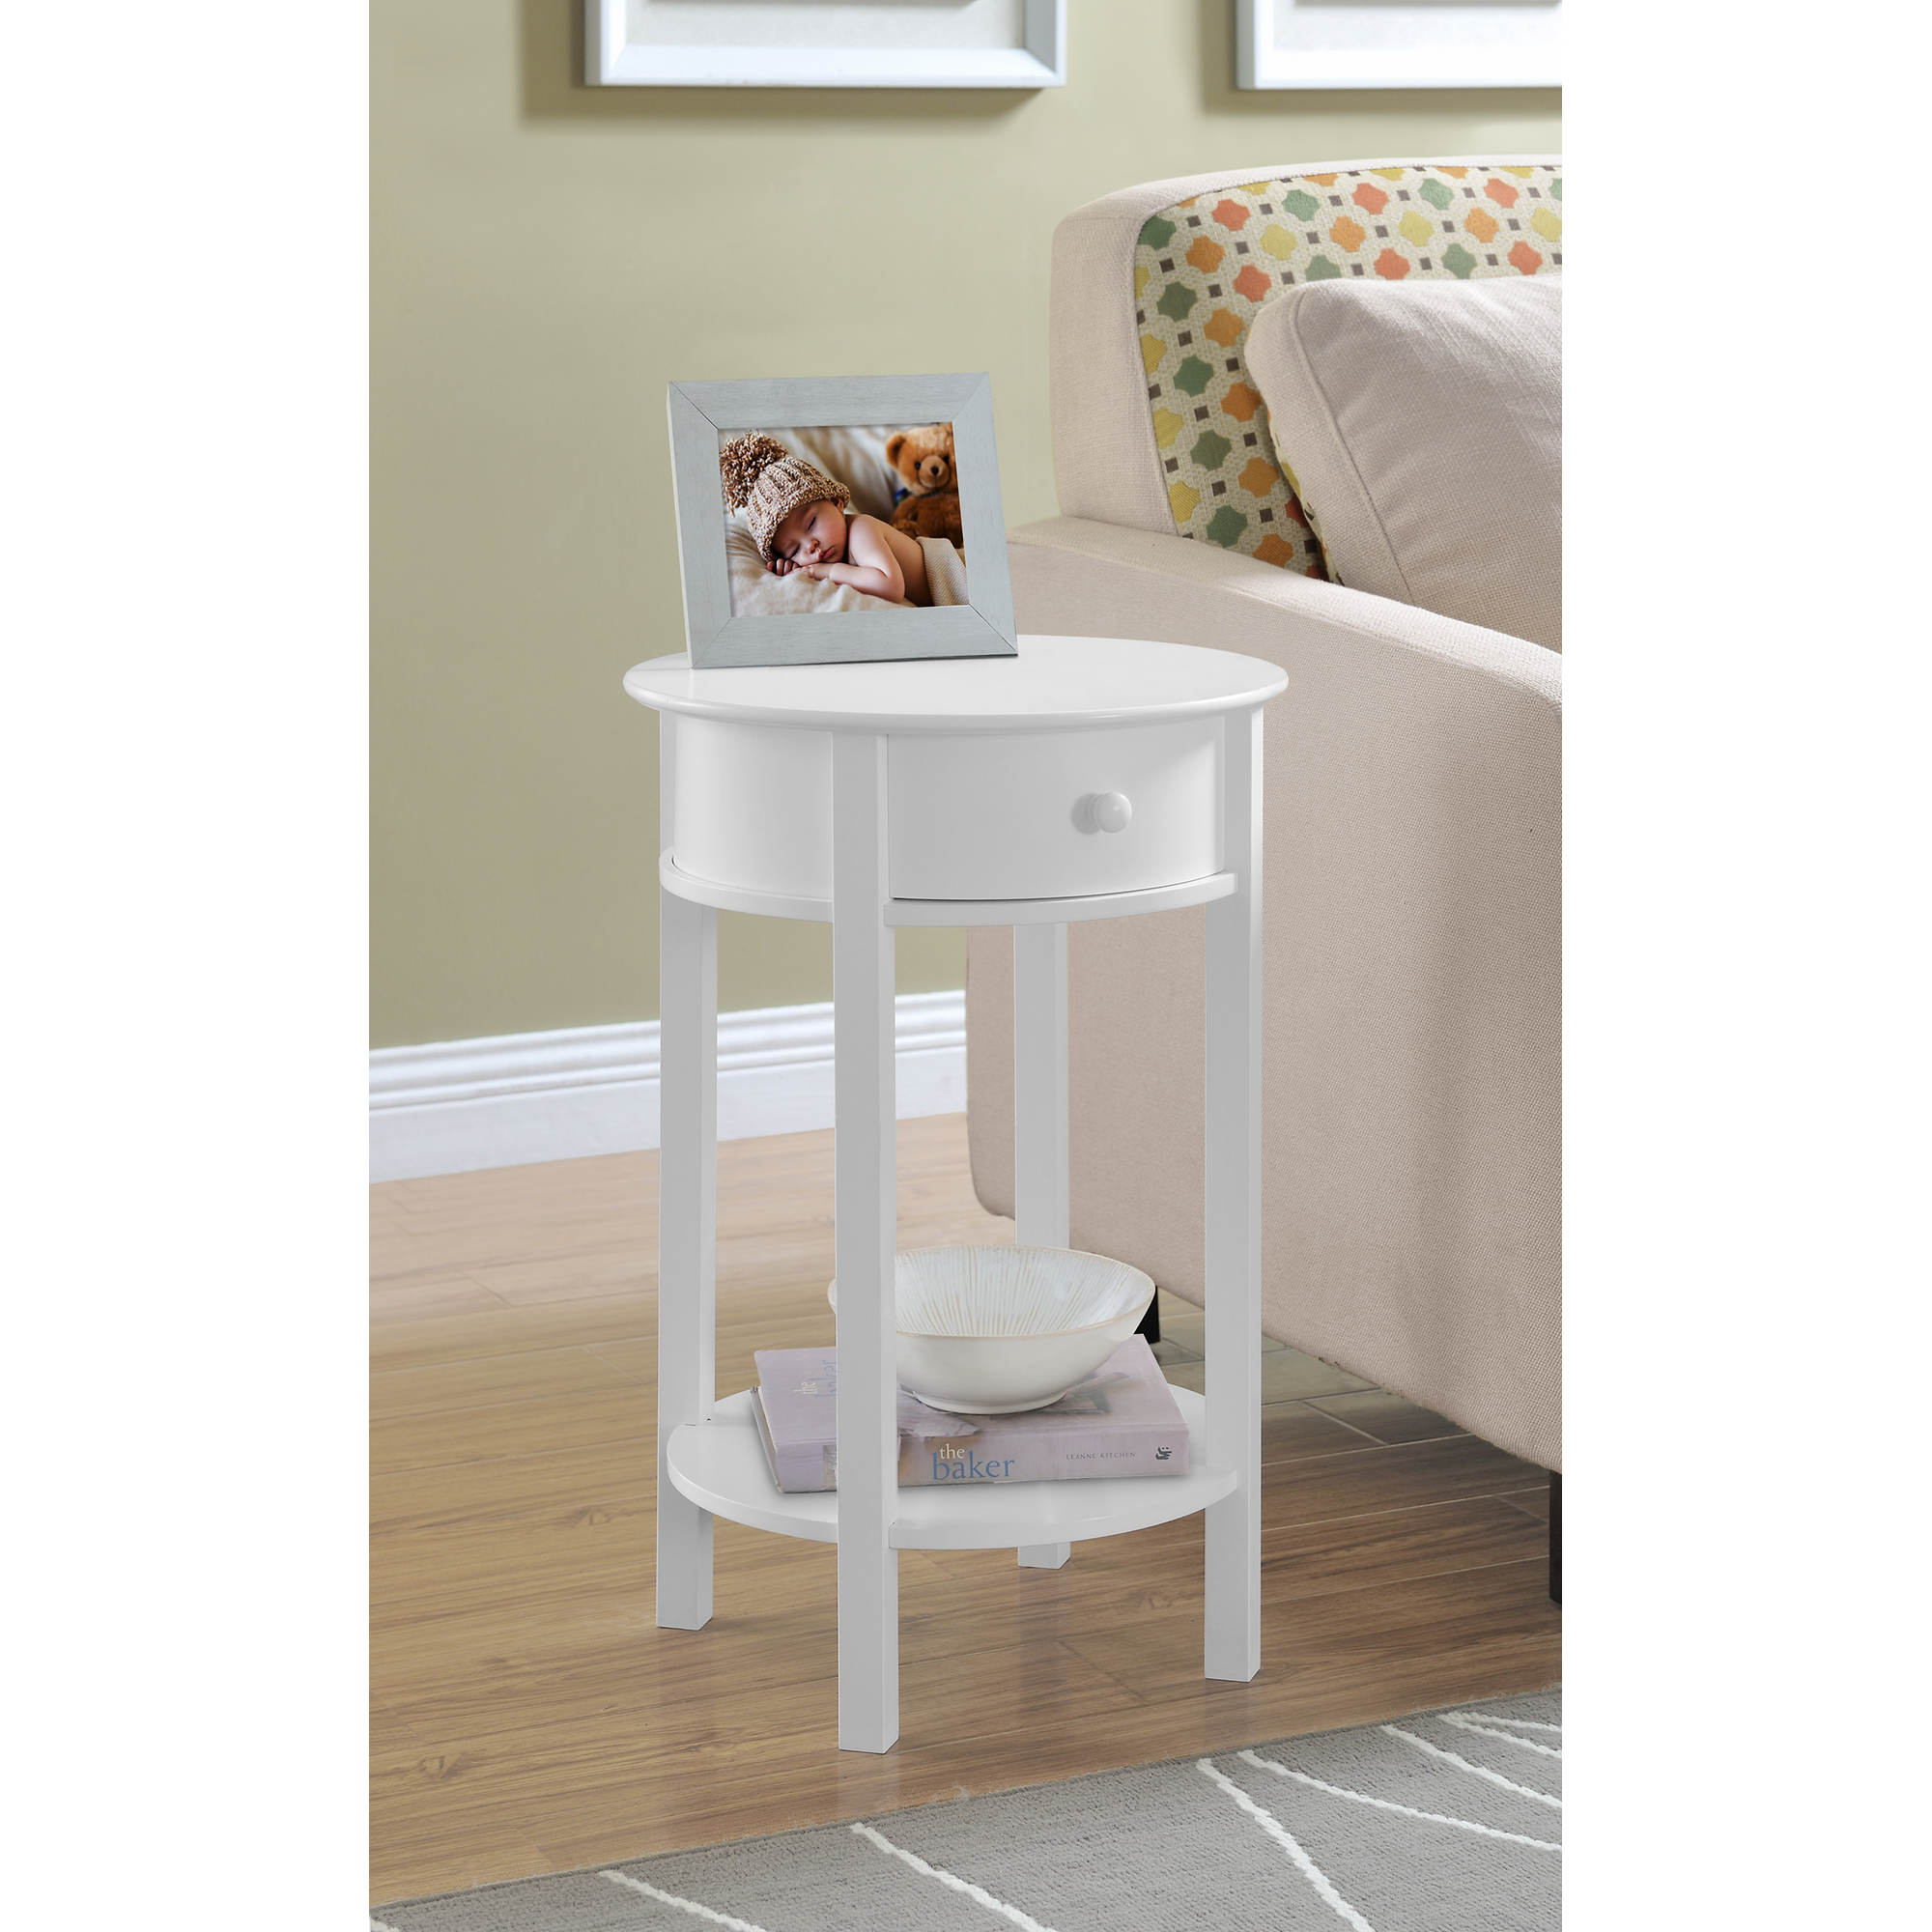 ameriwood home tipton accent table white bjs whole club service round undefined west elm coffee small square bedside outdoor bbq jcpenney shower curtains uma blue and umbrella